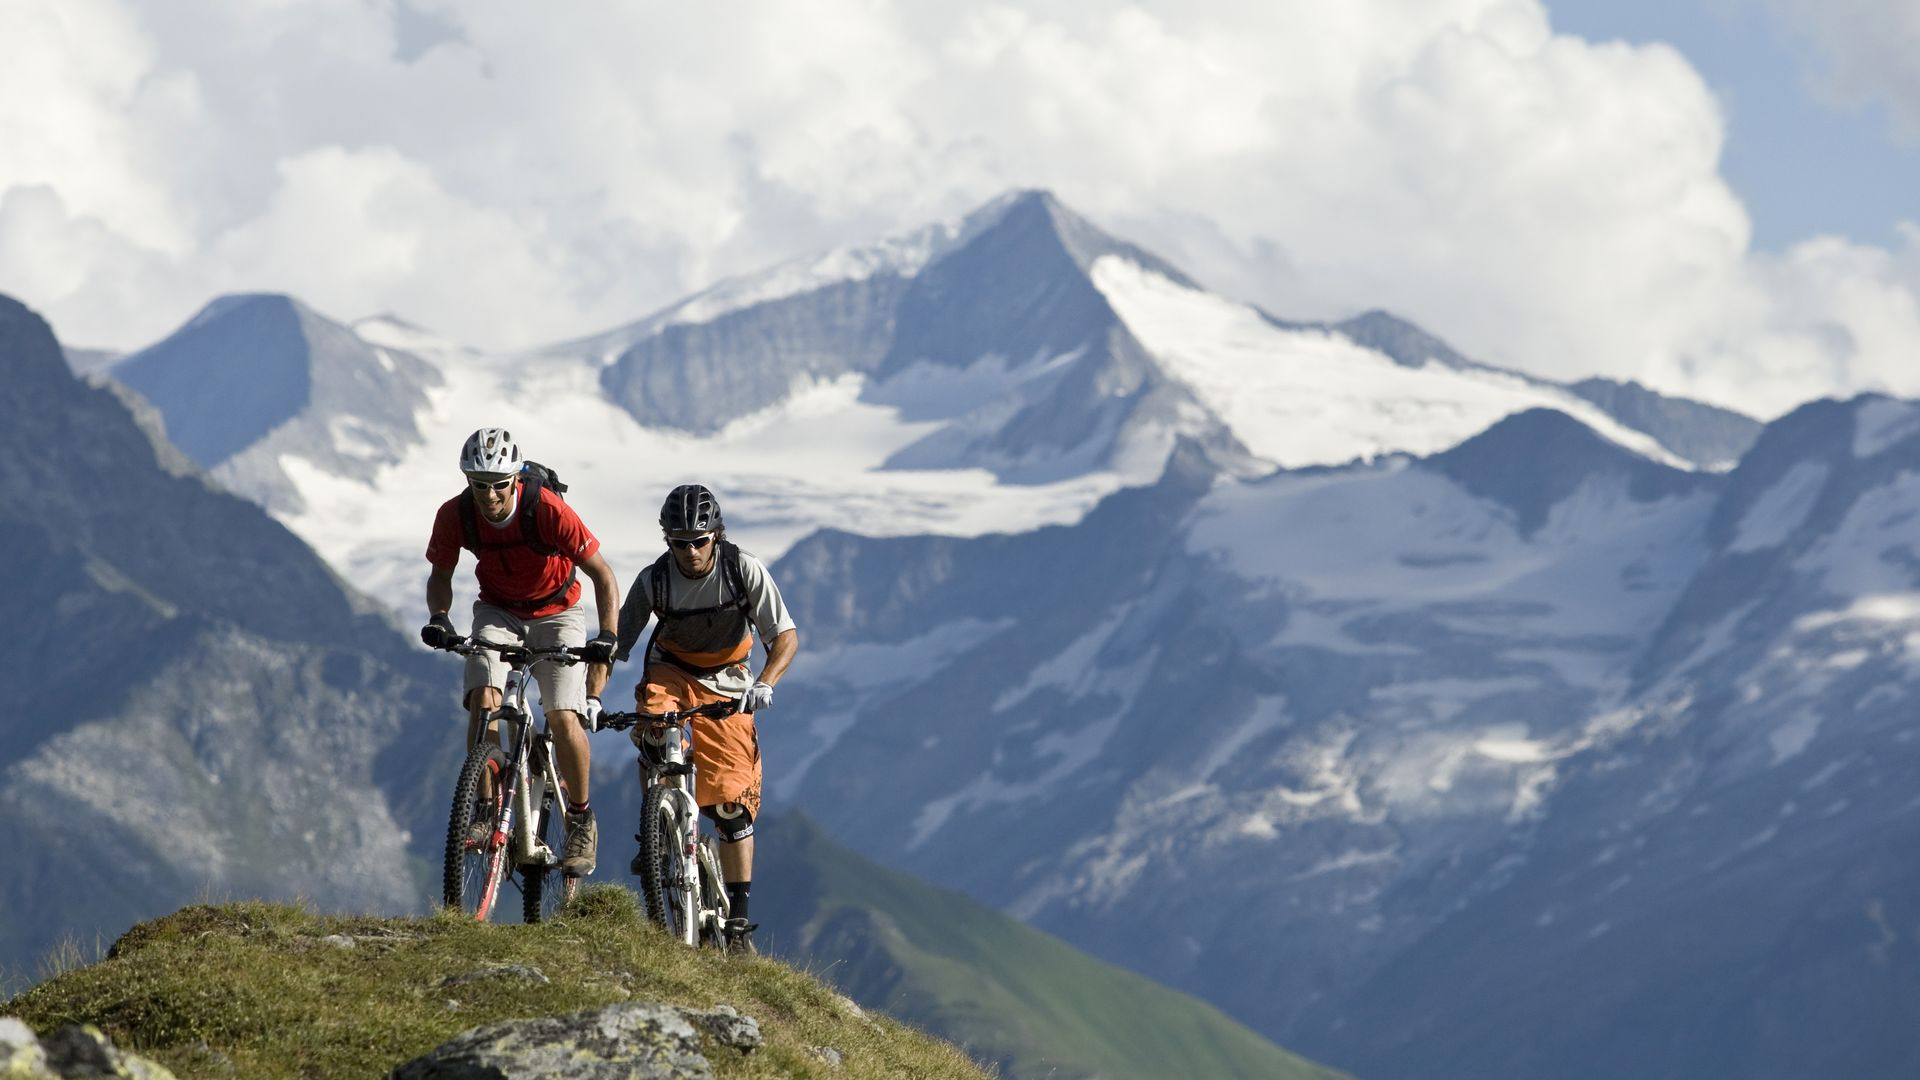 Mountainbike in der Ferienregion